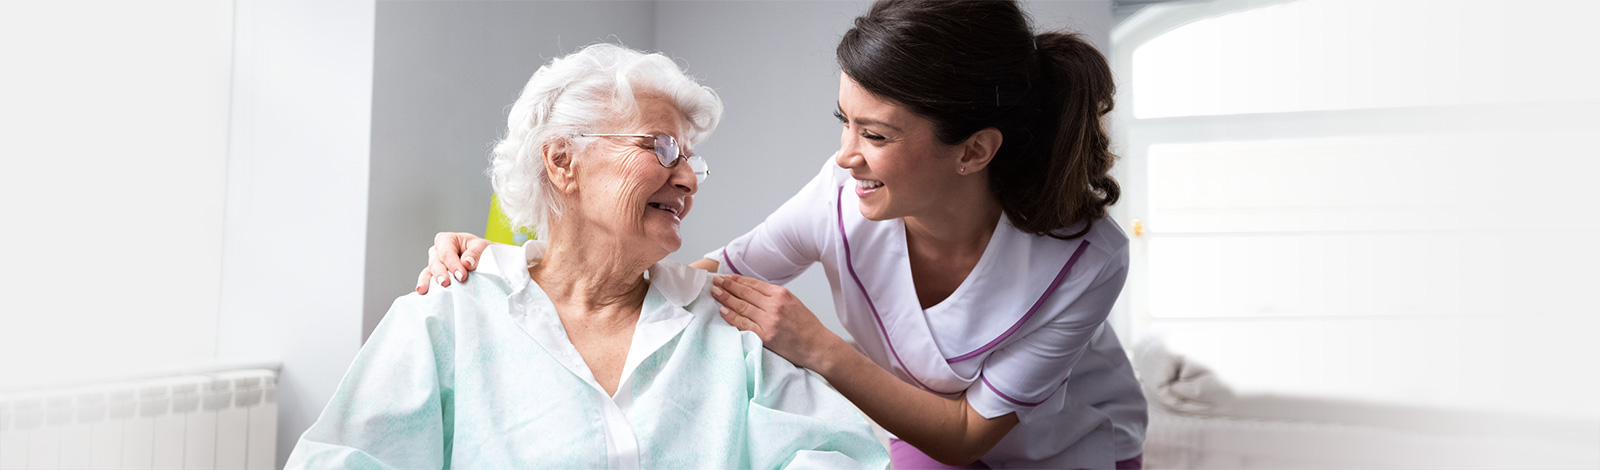 Nurse smiling and leaning down to speak with a resident seated in a wheelchair